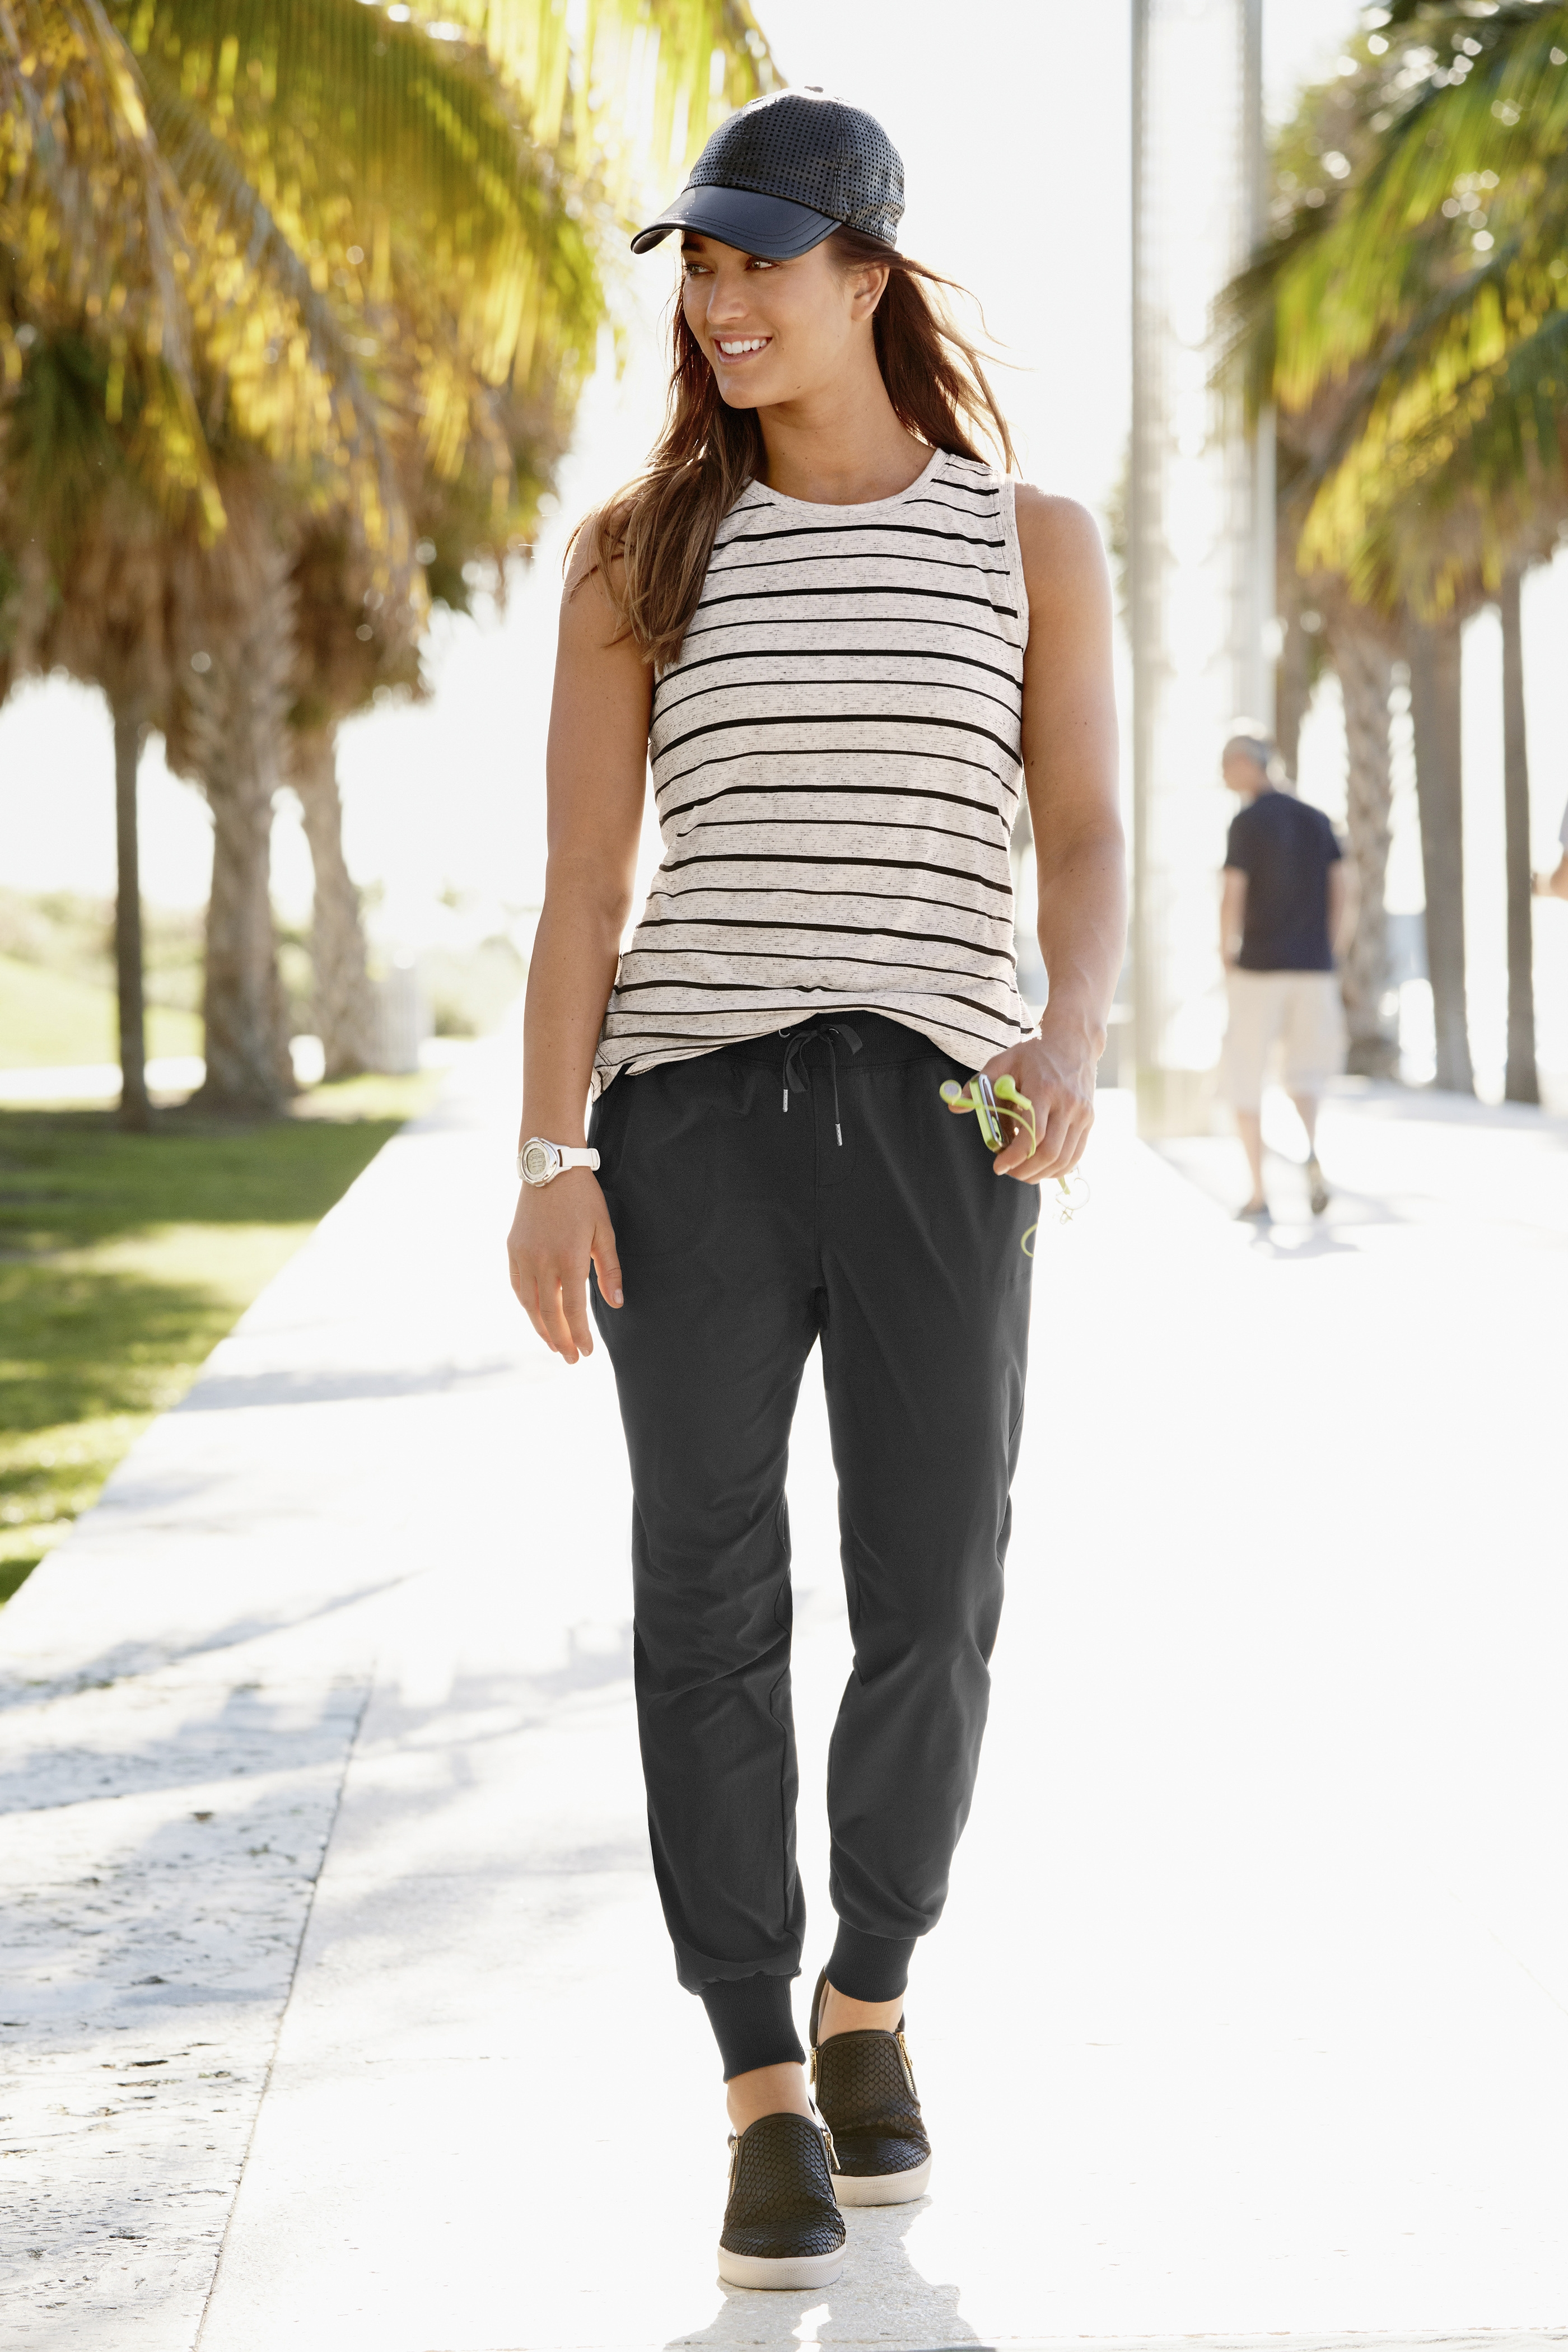 Jogger pants (Athleta) and a swimsuit with some coverage (Lands' End) are current trends, according to Google's research.